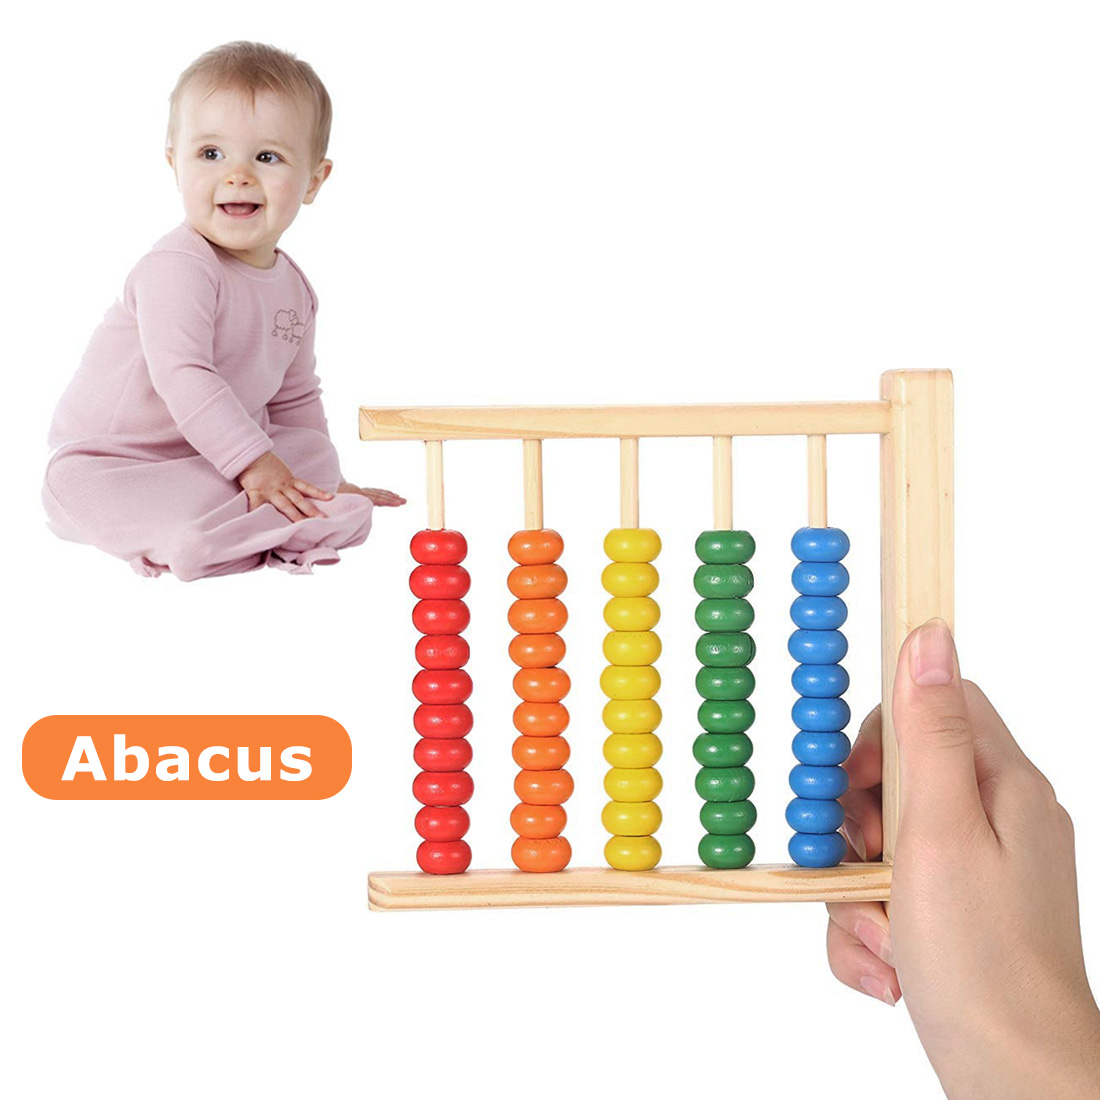 Baby Wood Abacus Toy Learning Educational Kids Math Toy Children Early Math Learning Educational Toy